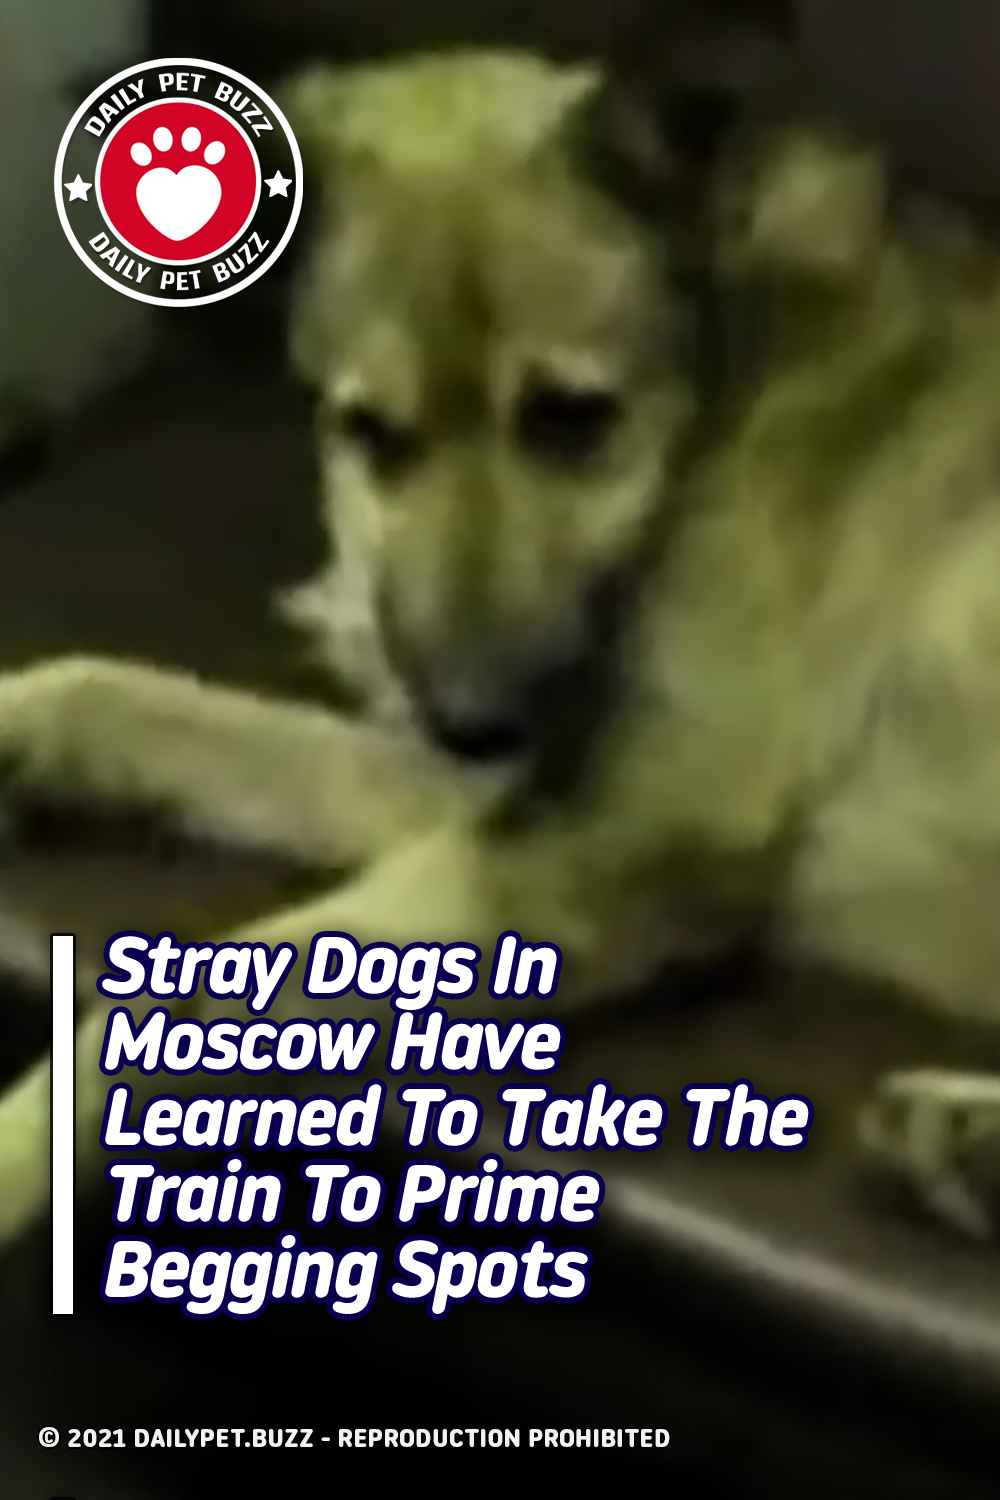 Stray Dogs In Moscow Have Learned To Take The Train To Prime Begging Spots